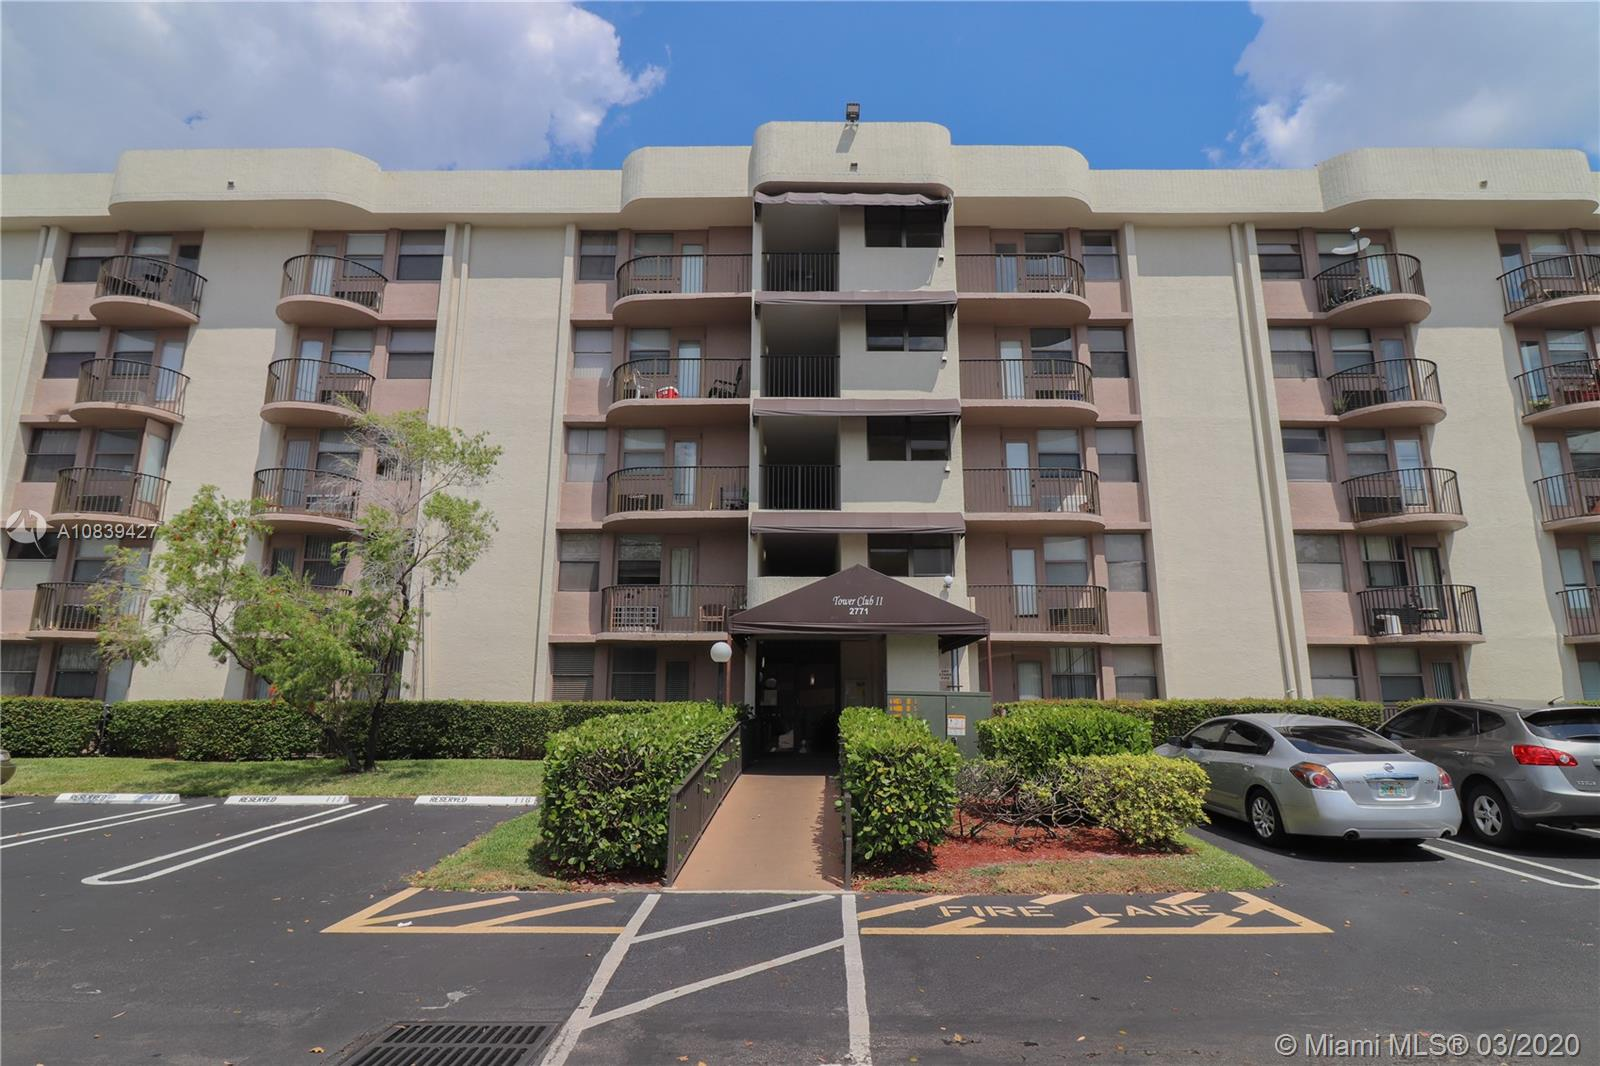 2771 Riverside Dr # A, Coral Springs, Florida 33065, 1 Bedroom Bedrooms, ,1 BathroomBathrooms,Residential,For Sale,2771 Riverside Dr # A,A10839427